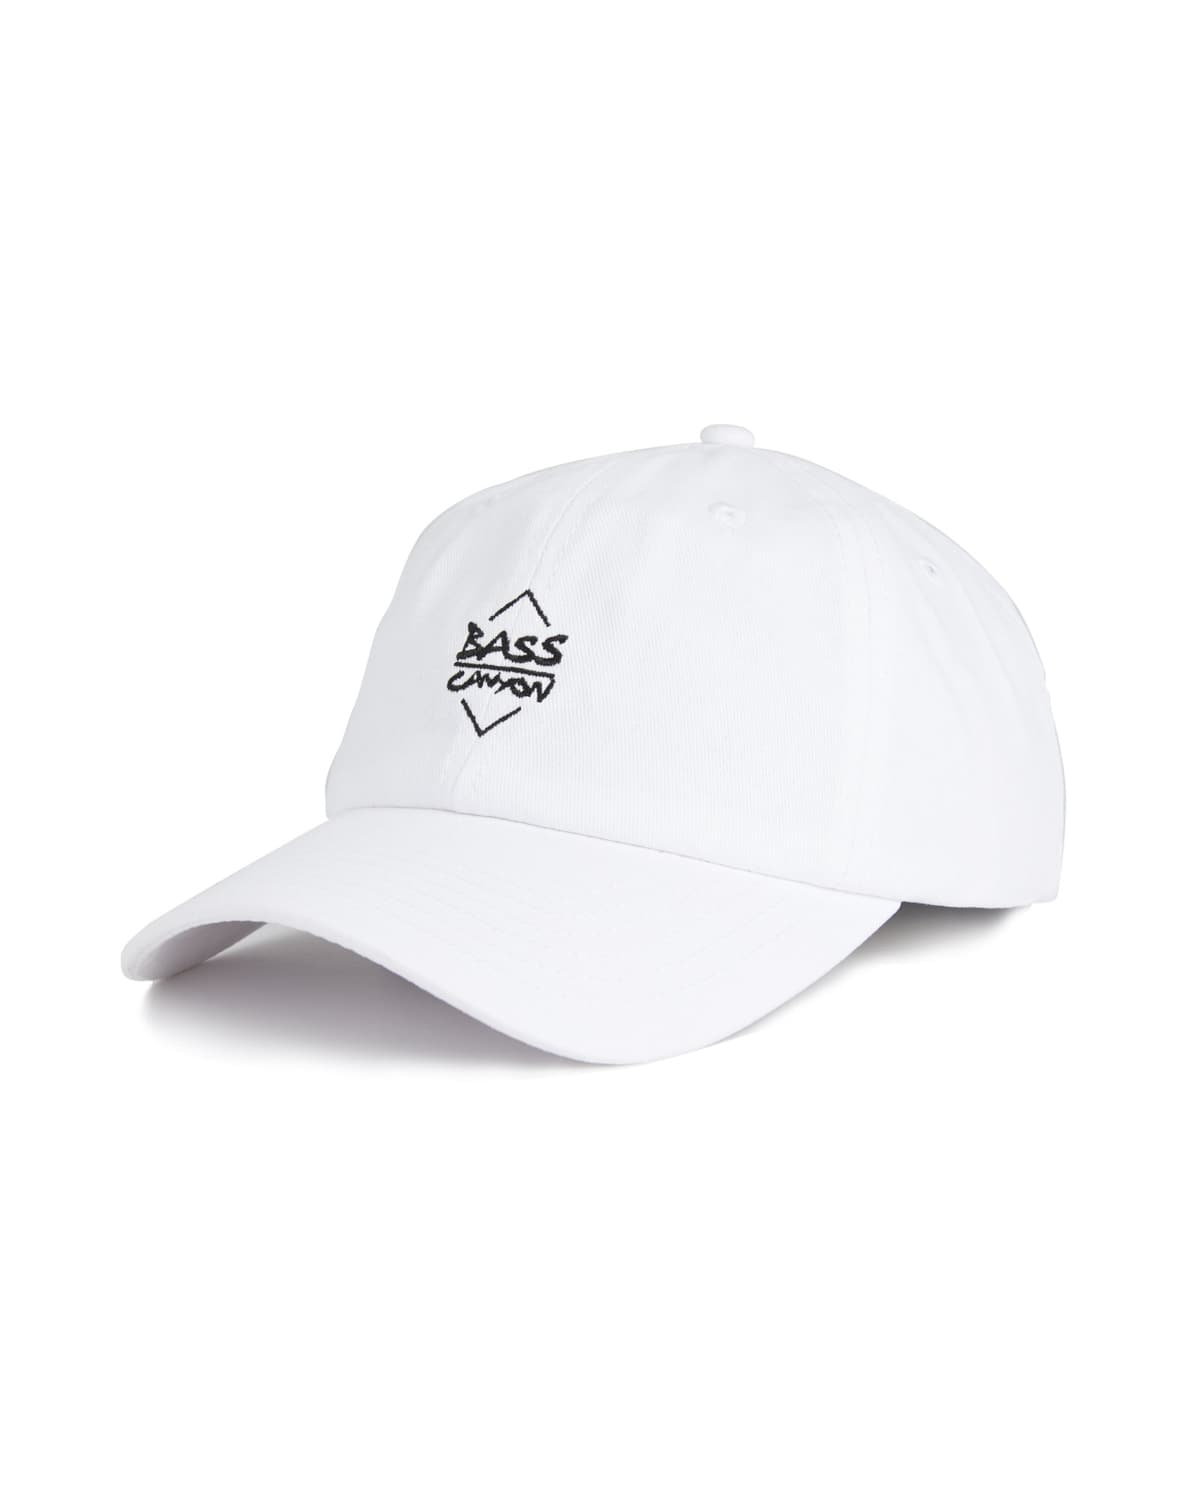 Bass Canyon Dad Hat - White